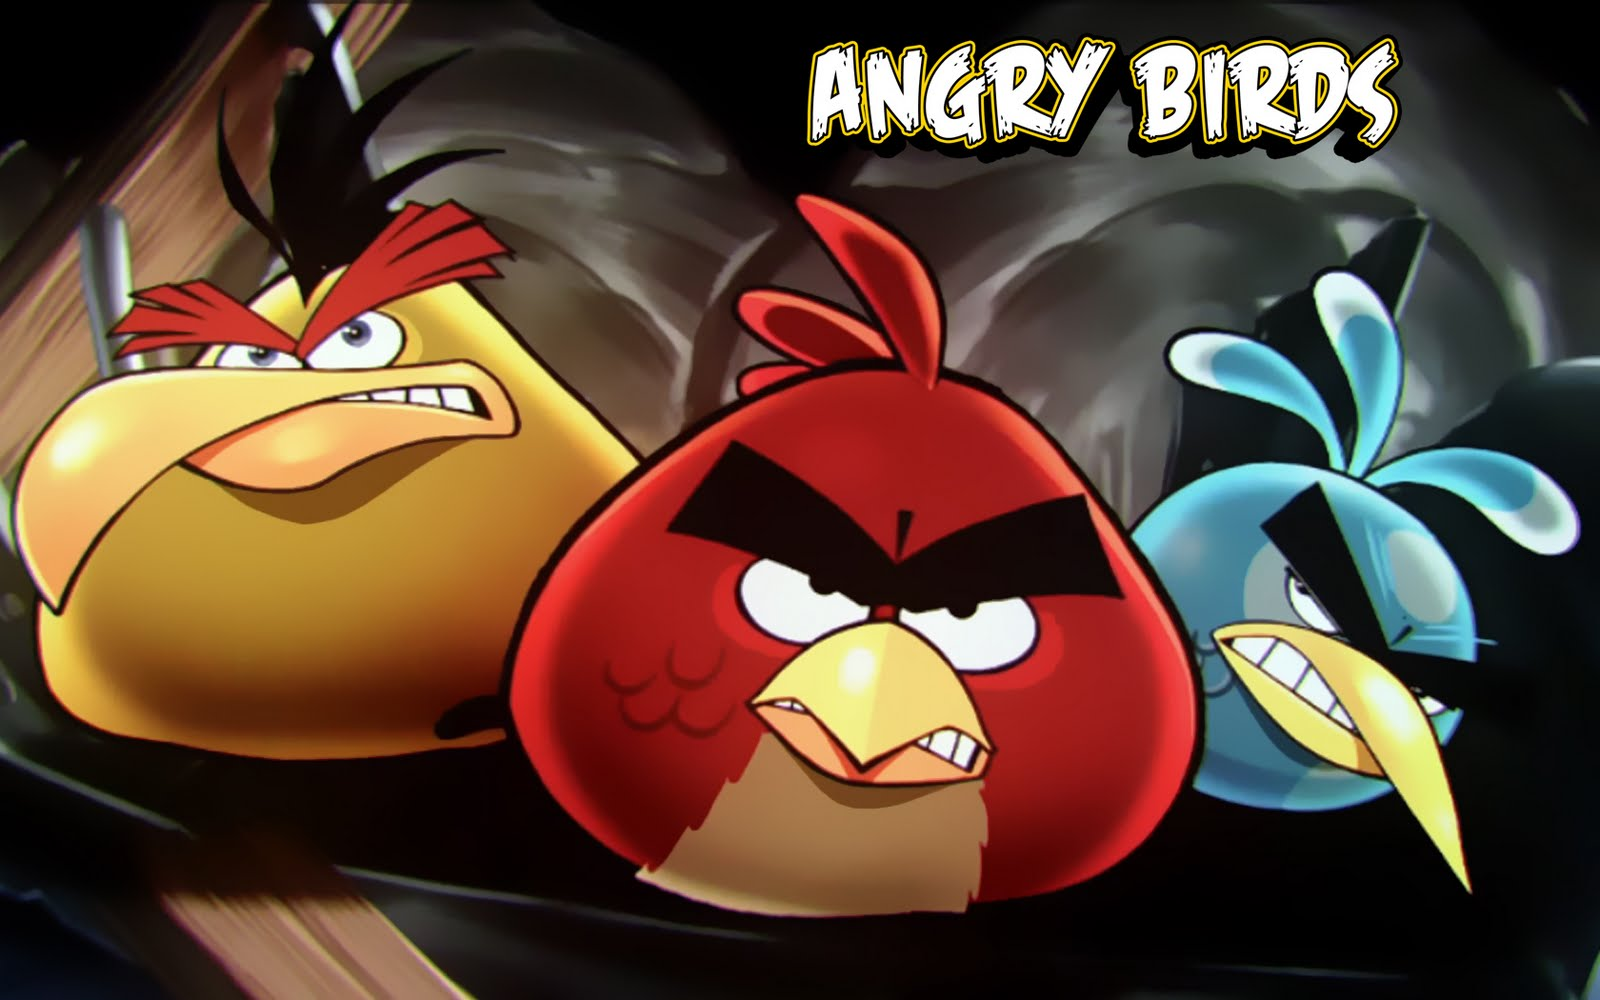 angry birds wallpaper 10 - photo #42